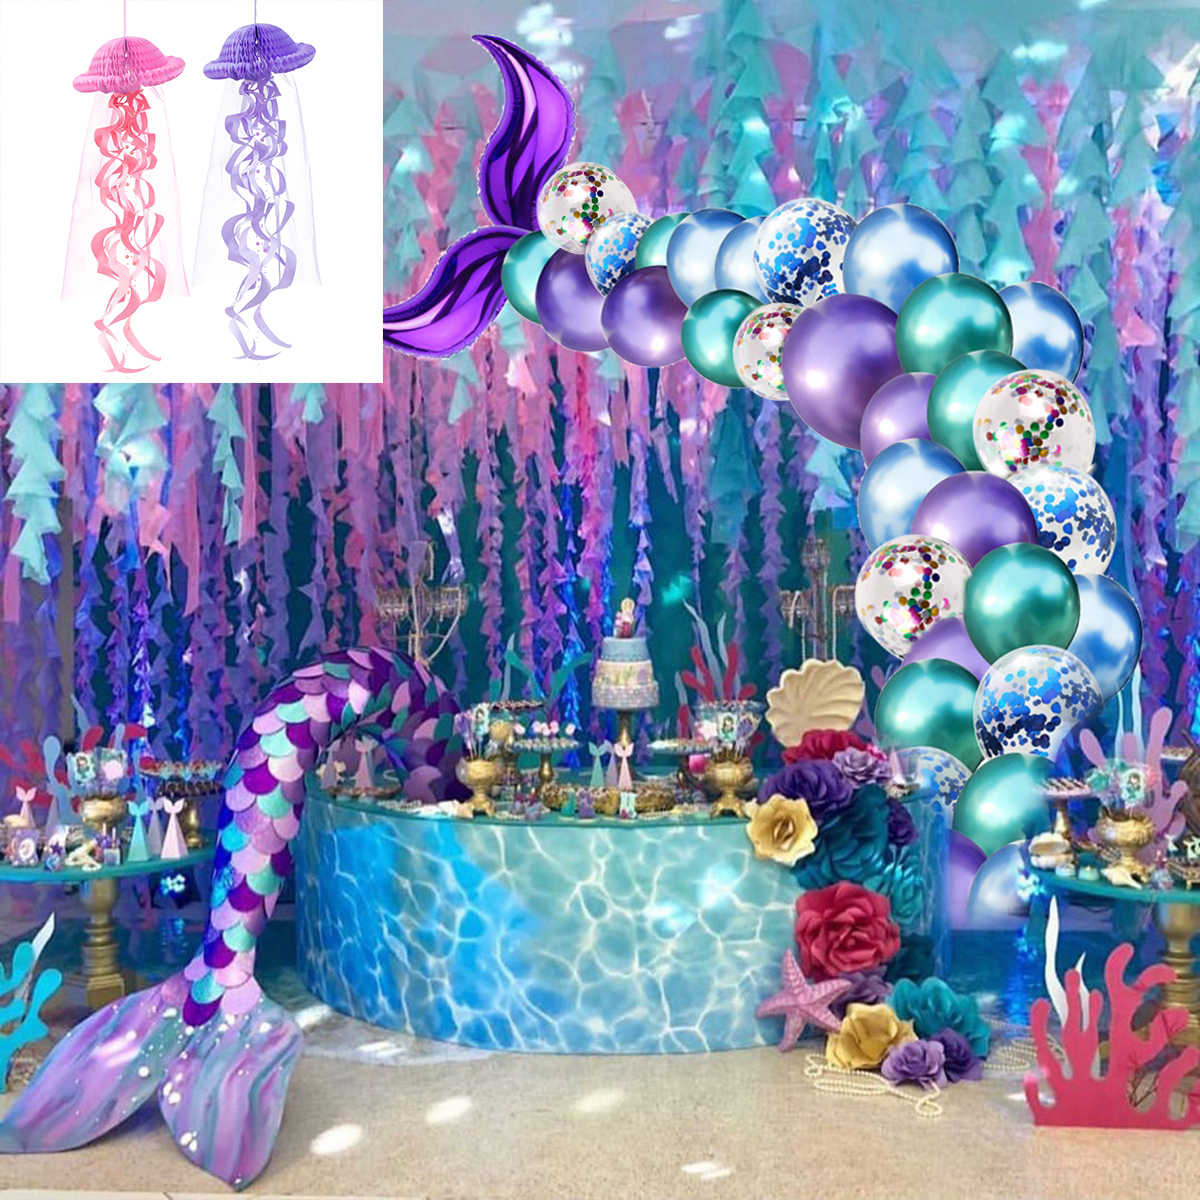 HUIRAN Romantic Little Mermaid Party Supplies Mermaid Decoration Mermaid Birthday Party Favors Kids Birthday Parties Decorations